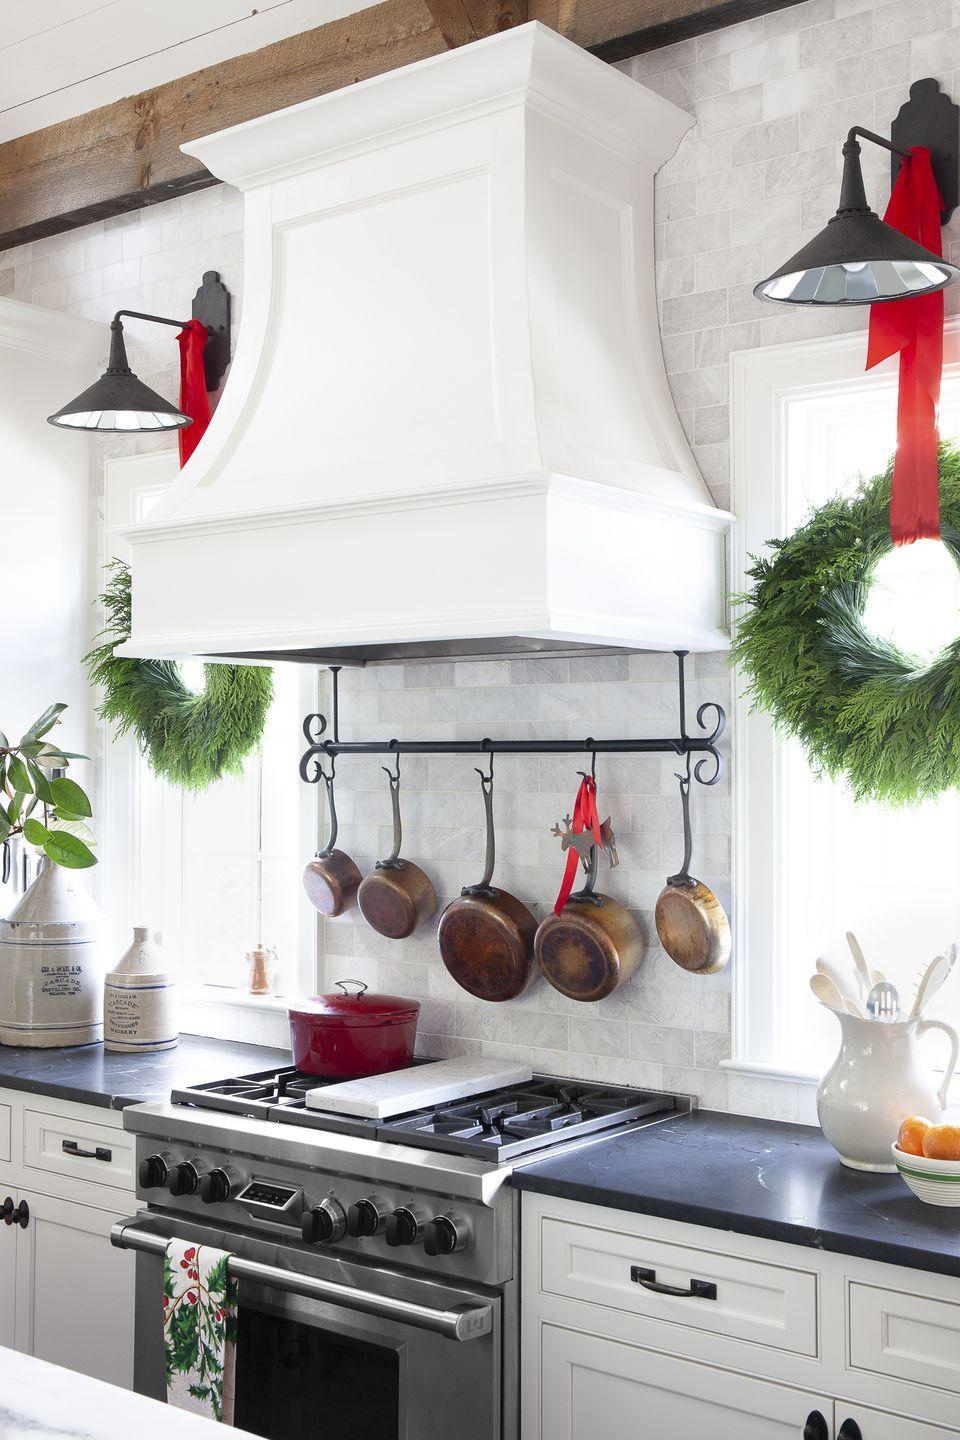 <p>The perfect example of the use-what-you-have spirit! Get creative with natural places to hang wreaths over windows. Here, red ribbon is tied in a simple bow over the kitchen's black sconces. </p>